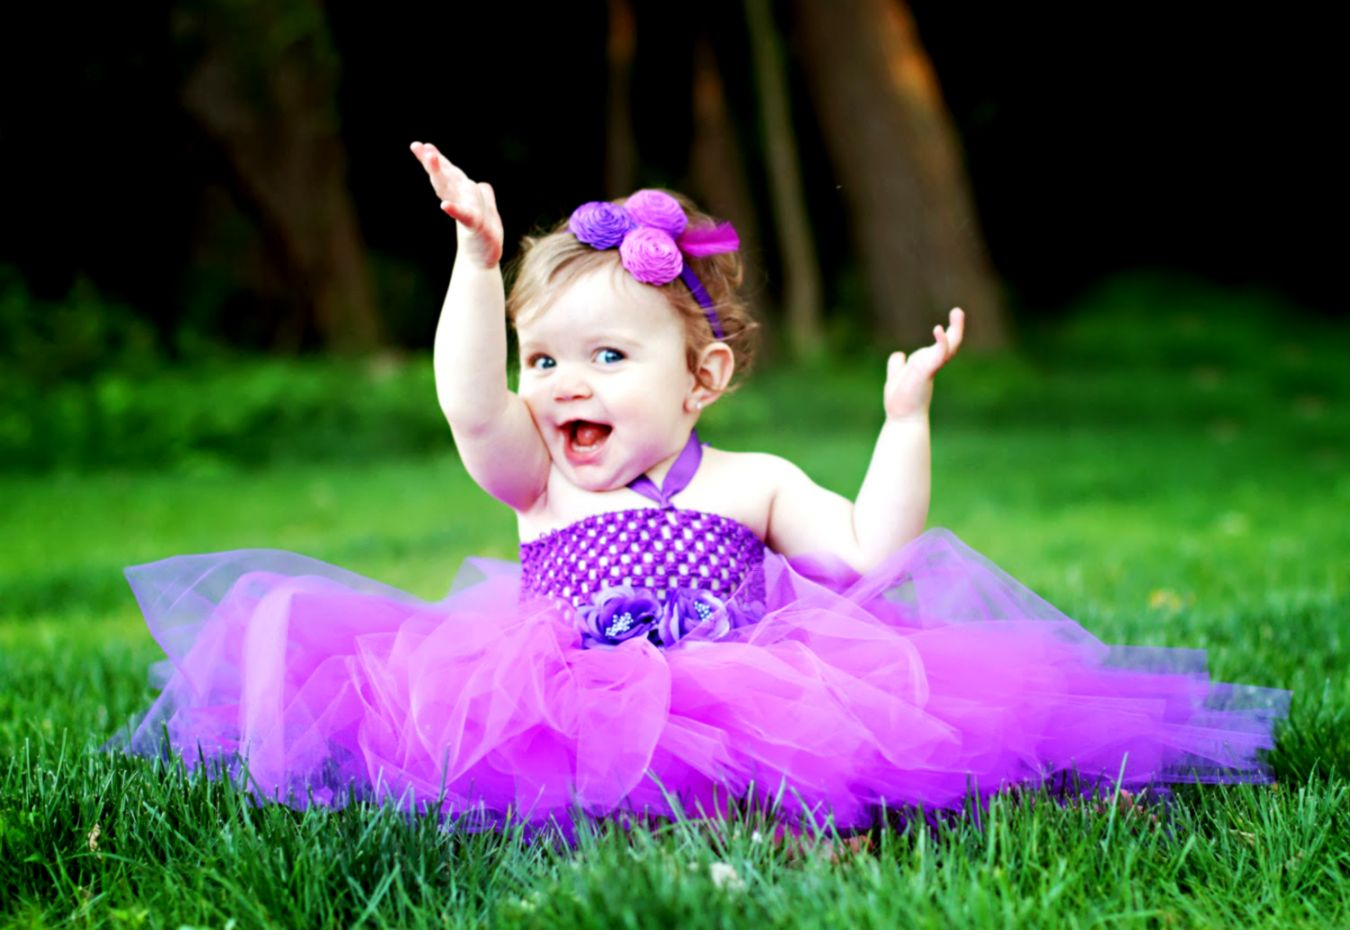 cute babies pictures | best wallpapers hd gallery